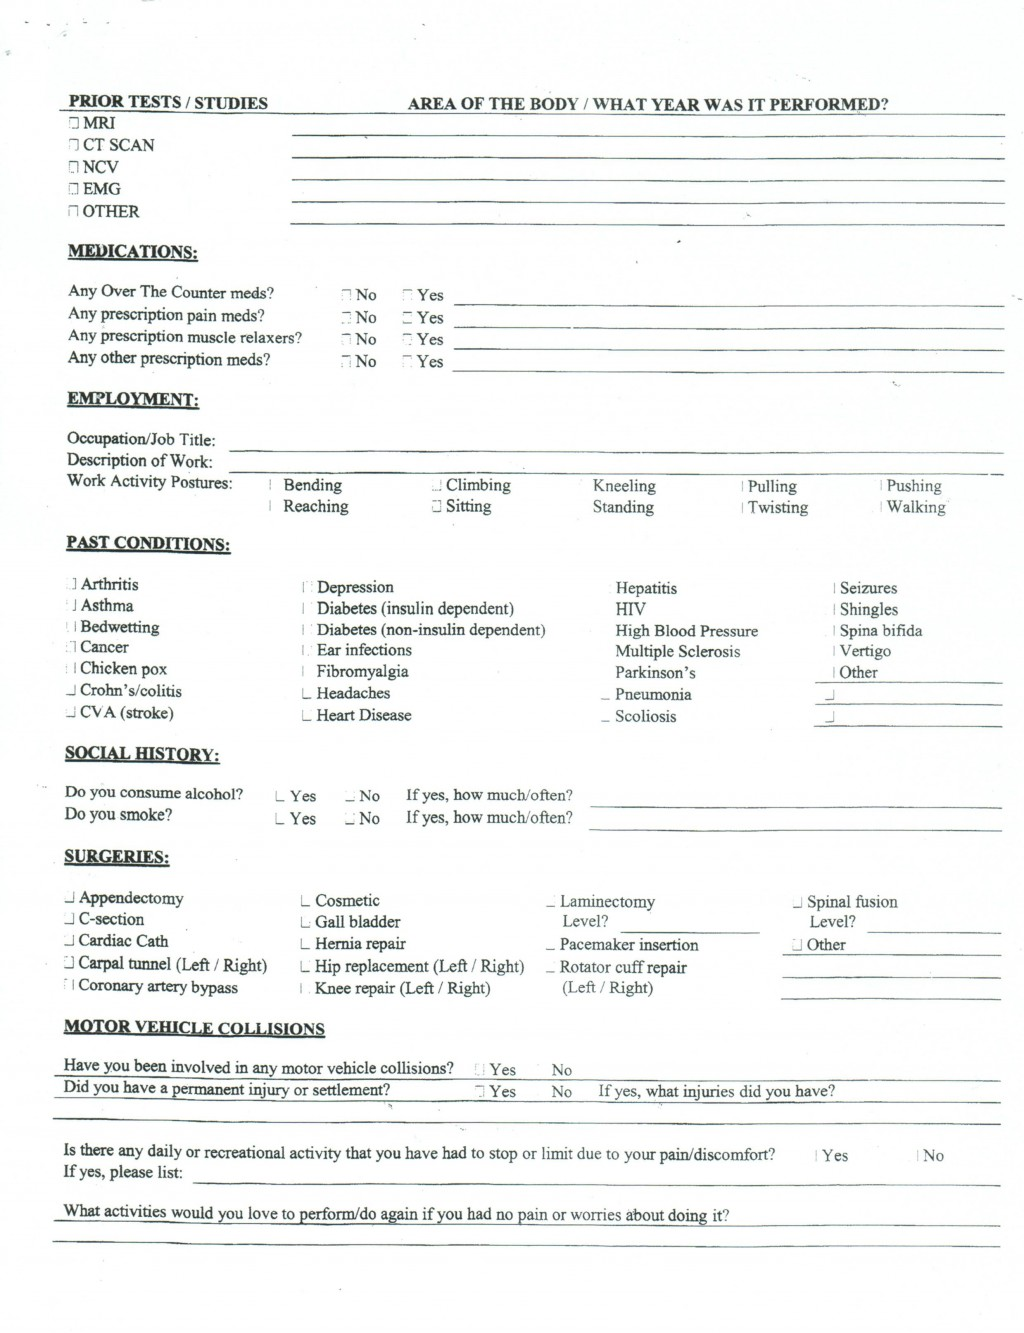 004 Shocking Patient Intake Form Template Design  Word Client Excel PdfLarge